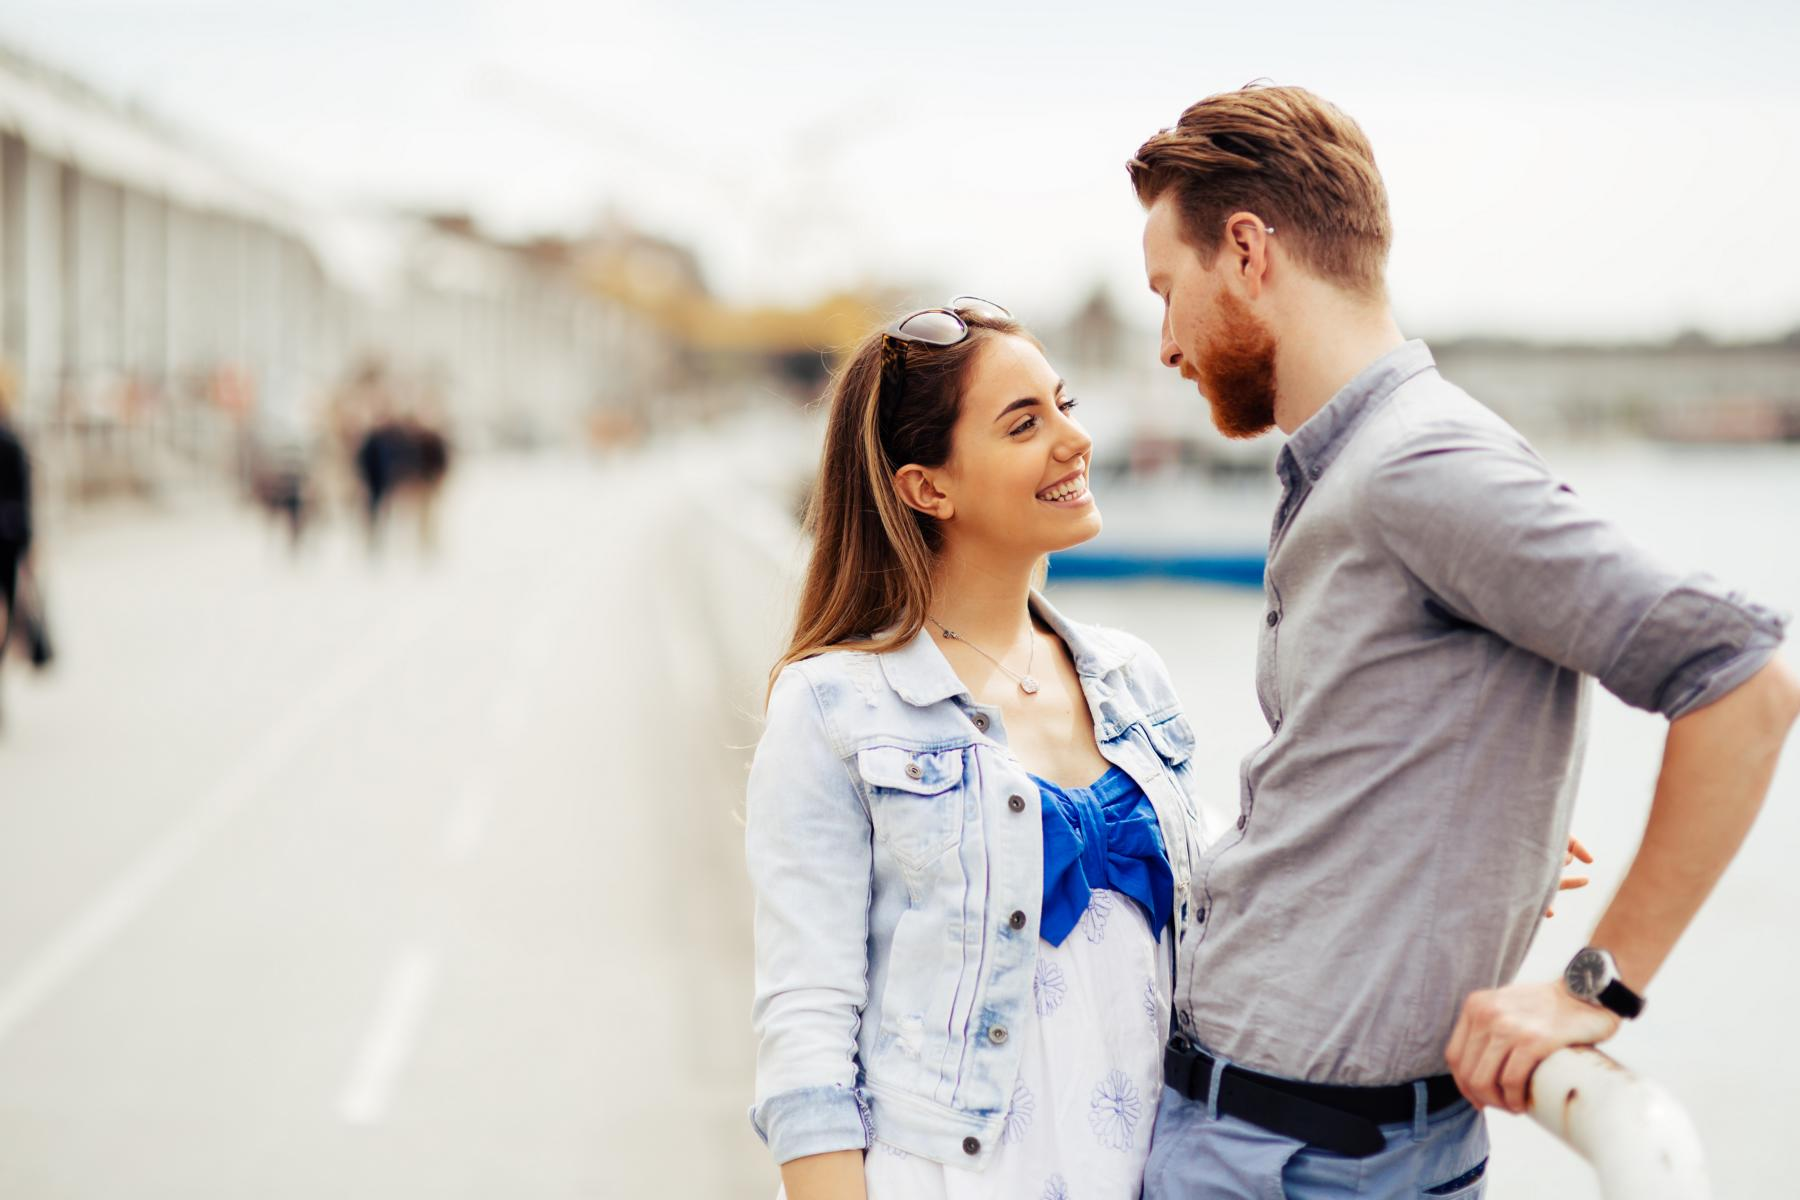 Buy @ How To Get Your Ex Back Using The Law Of Attraction